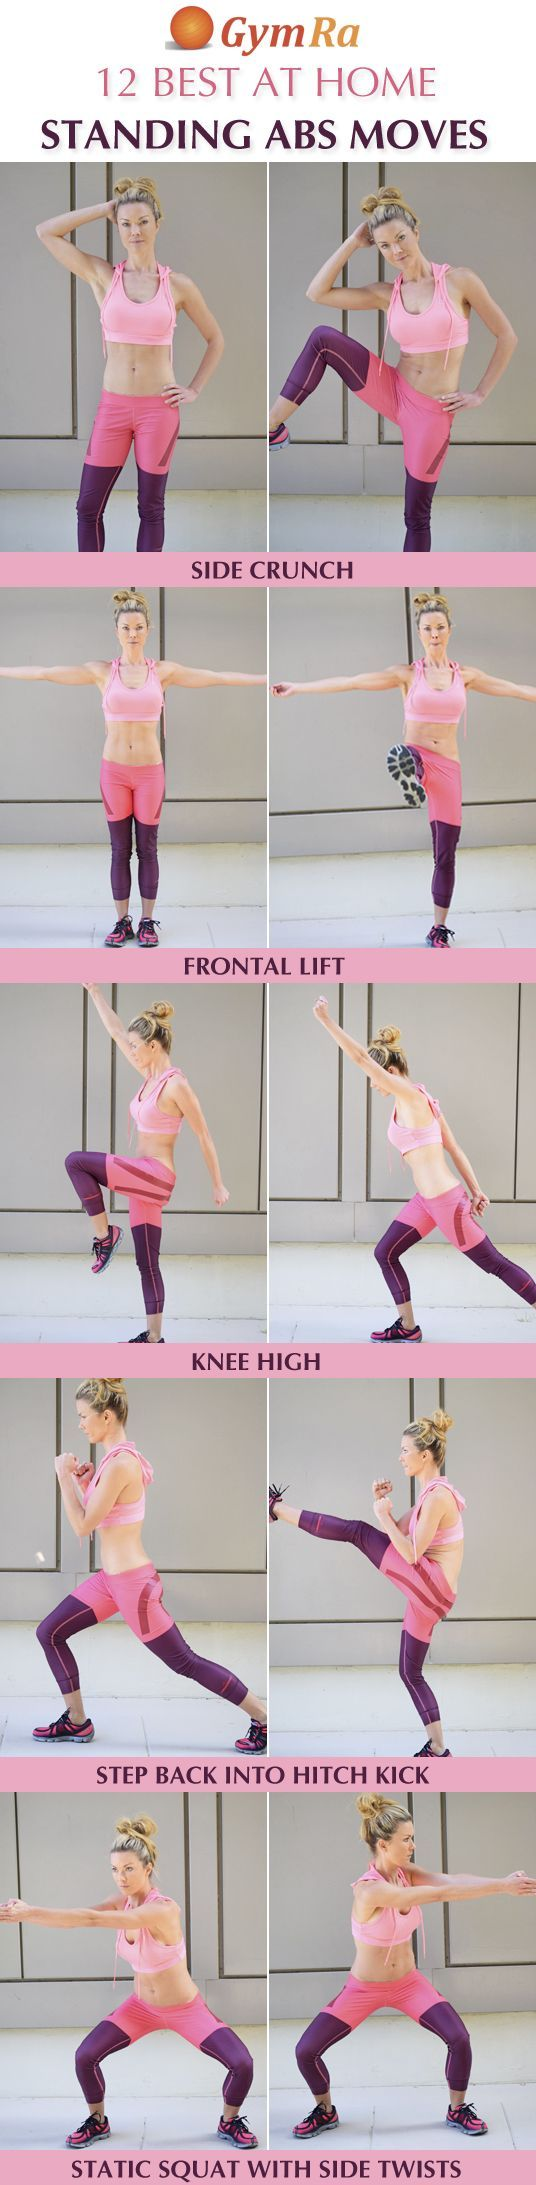 12 Best At Home Standing Abs Exercises. Click the above image to see all the moves demonstrated in video and/or GIF format. Try GymRa free for a month. NO CREDIT CARD REQUIRED!